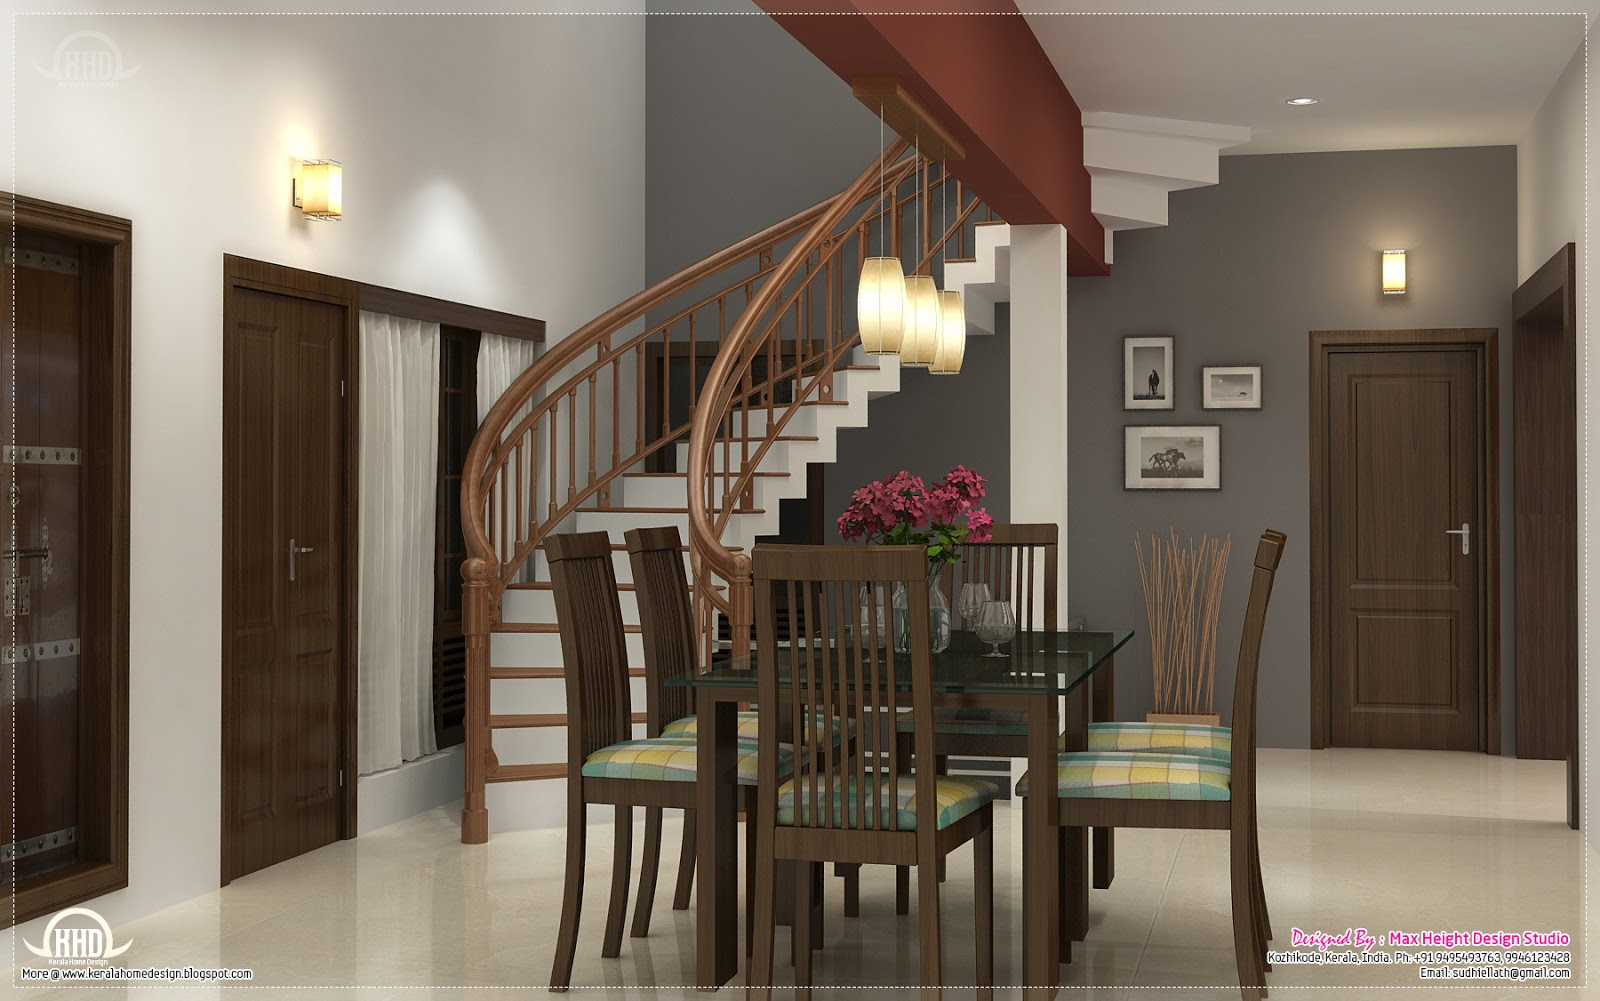 Karma interior designers kozhikode kerala for Karma home designs